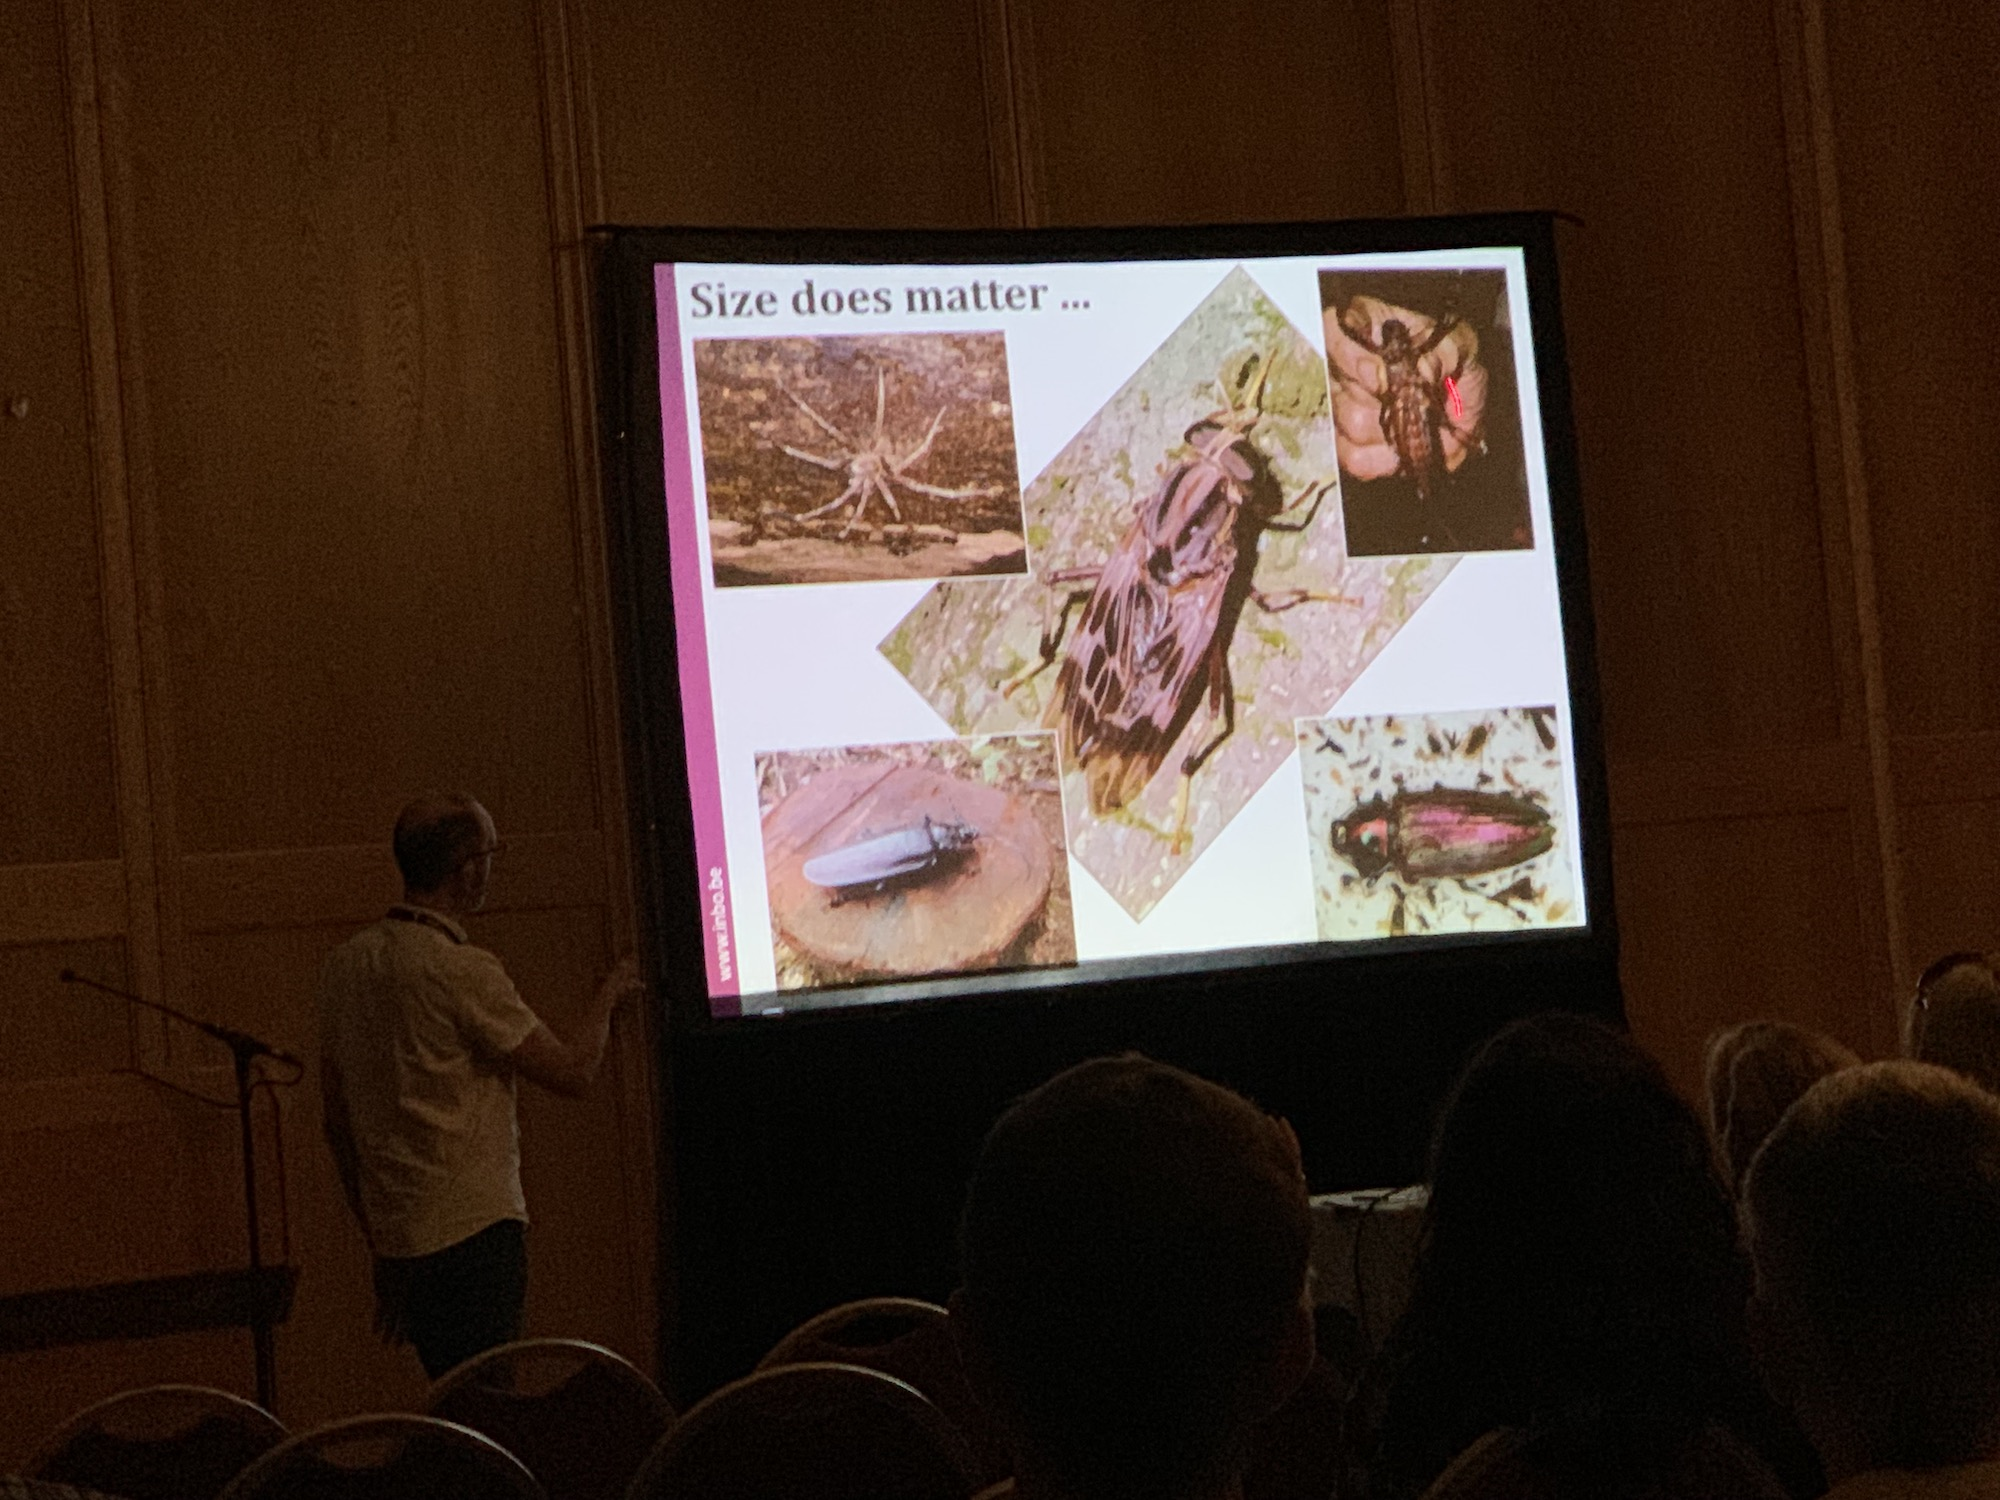 mark_benecke_ICD9_dipterology_world_congress_windhoeck_namibia - 184.jpg